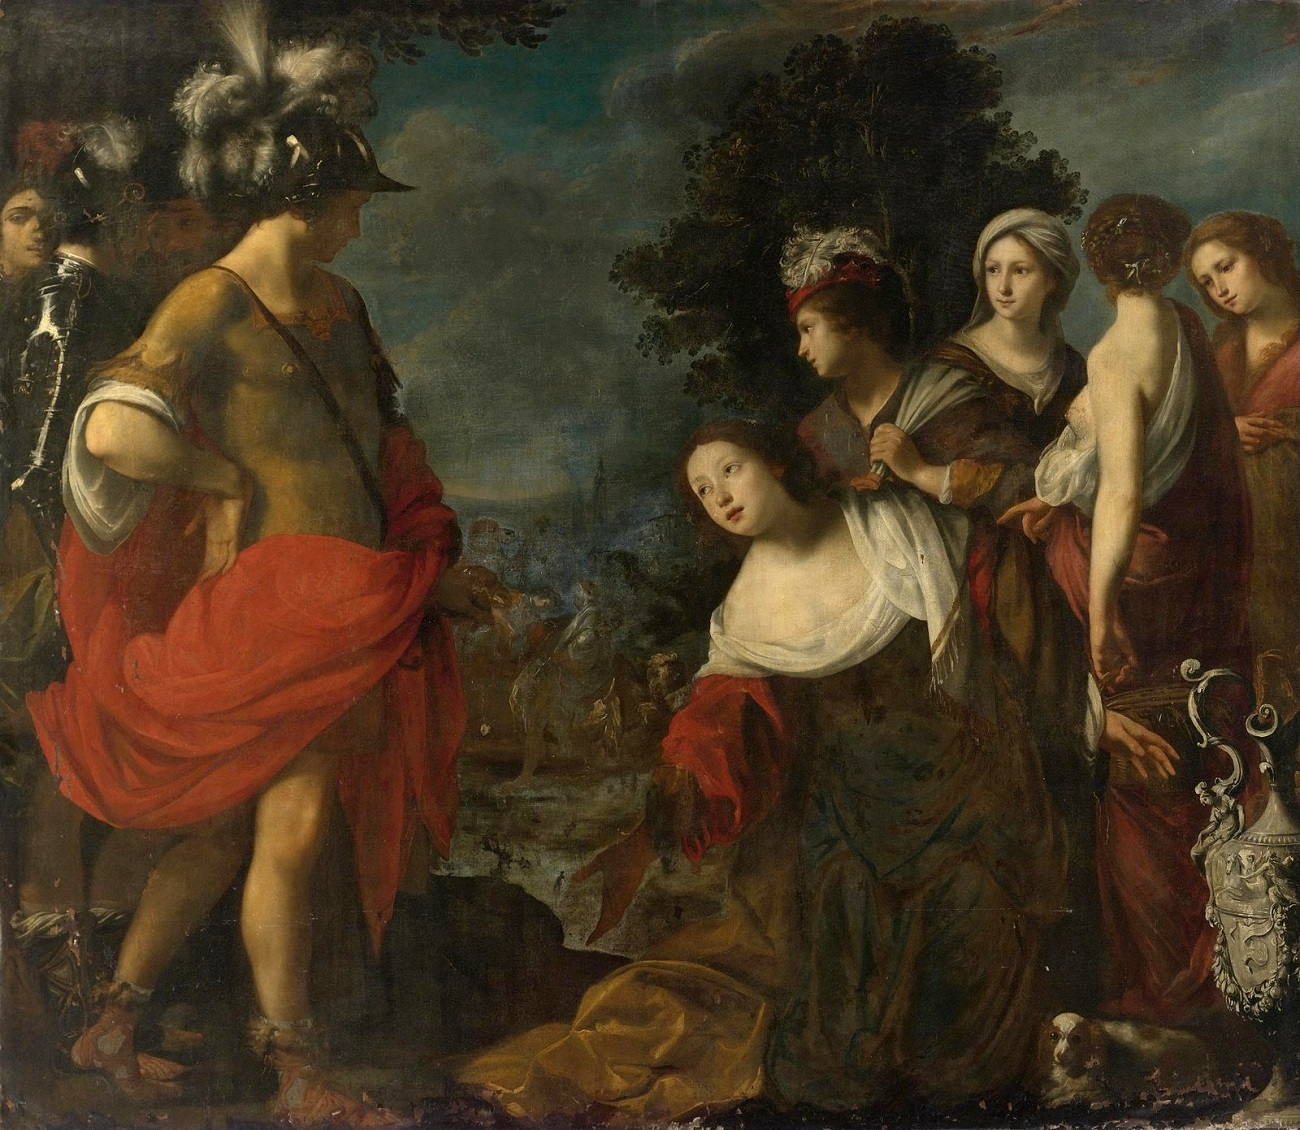 Авигея перед Давидом (Abigail before David)_201.3 х 232.1_х.,м._Частное собрание.jpg